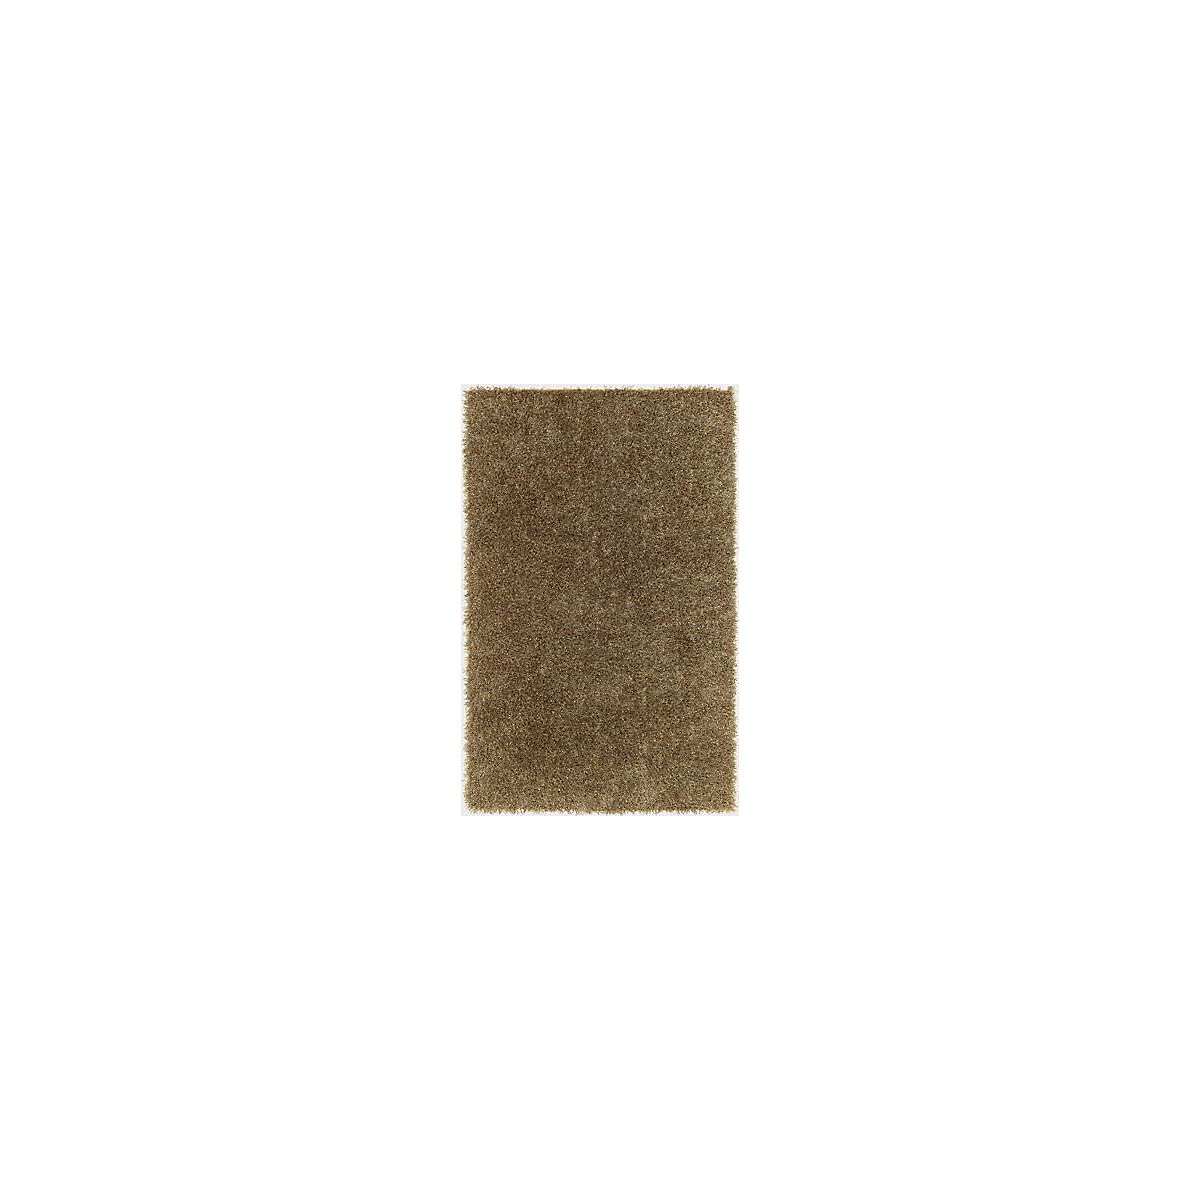 Belize Taupe 8X10 Area Rug